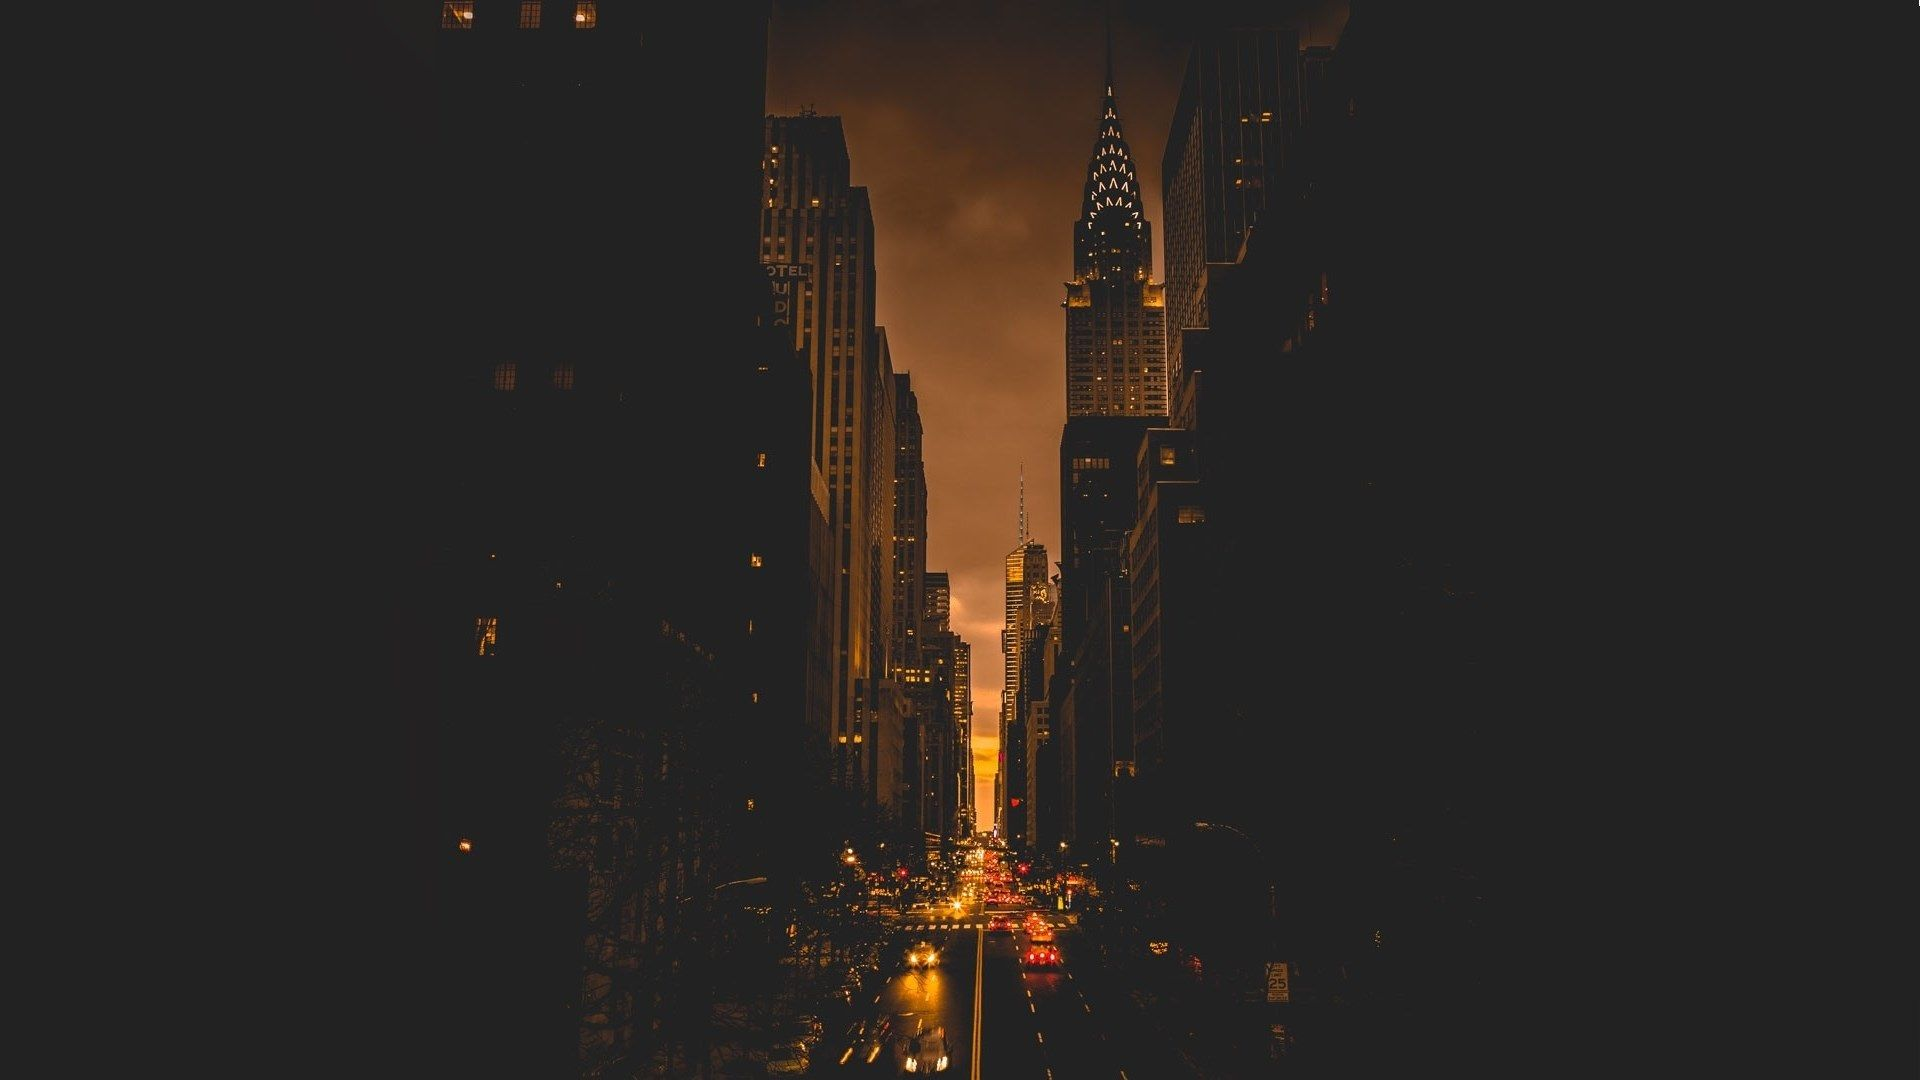 Pin By Roger Dale On You Must Be The Change You Wish To See In The World New York Wallpaper New York City Photos City Wallpaper